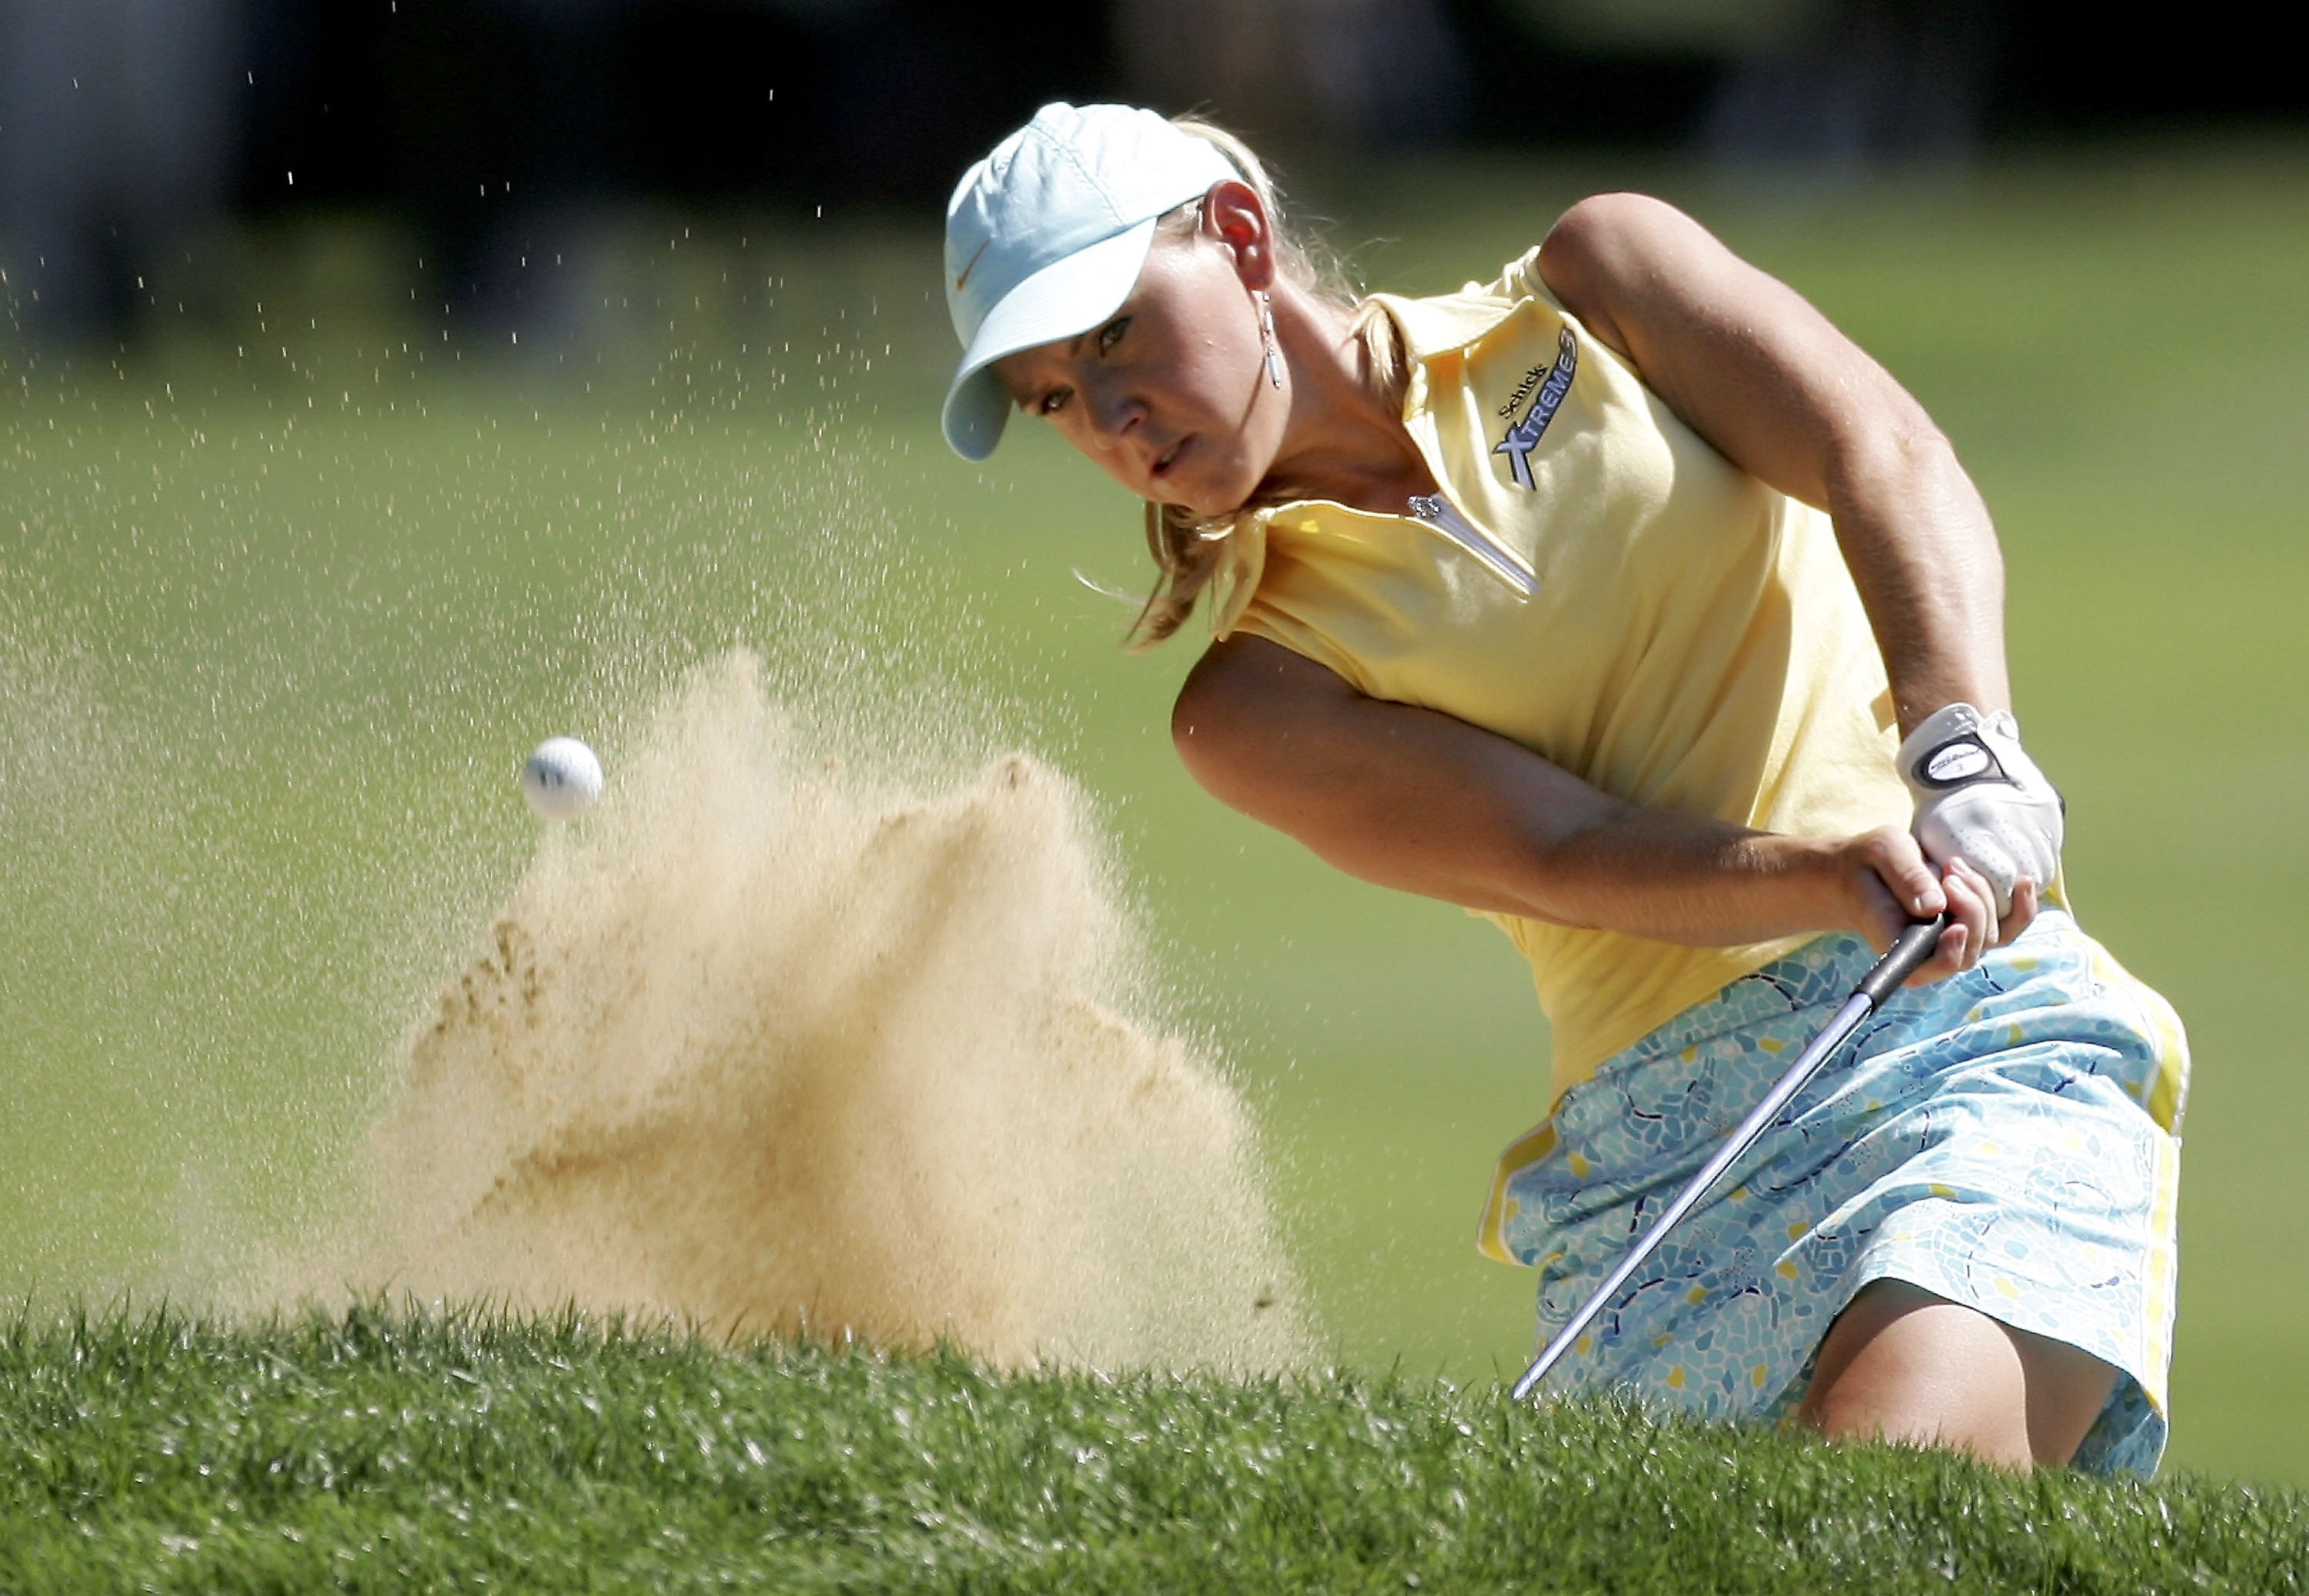 PORTLAND, OR - AUGUST 20:  Jenna Daniels hits out of the bunker on the 5th hole during the final round of the LPGA Safeway Classic August 20, 2006 at Columbia Edgewater Country Club in Portland, Oregon.  (Photo by Jonathan Ferrey/Getty Images)